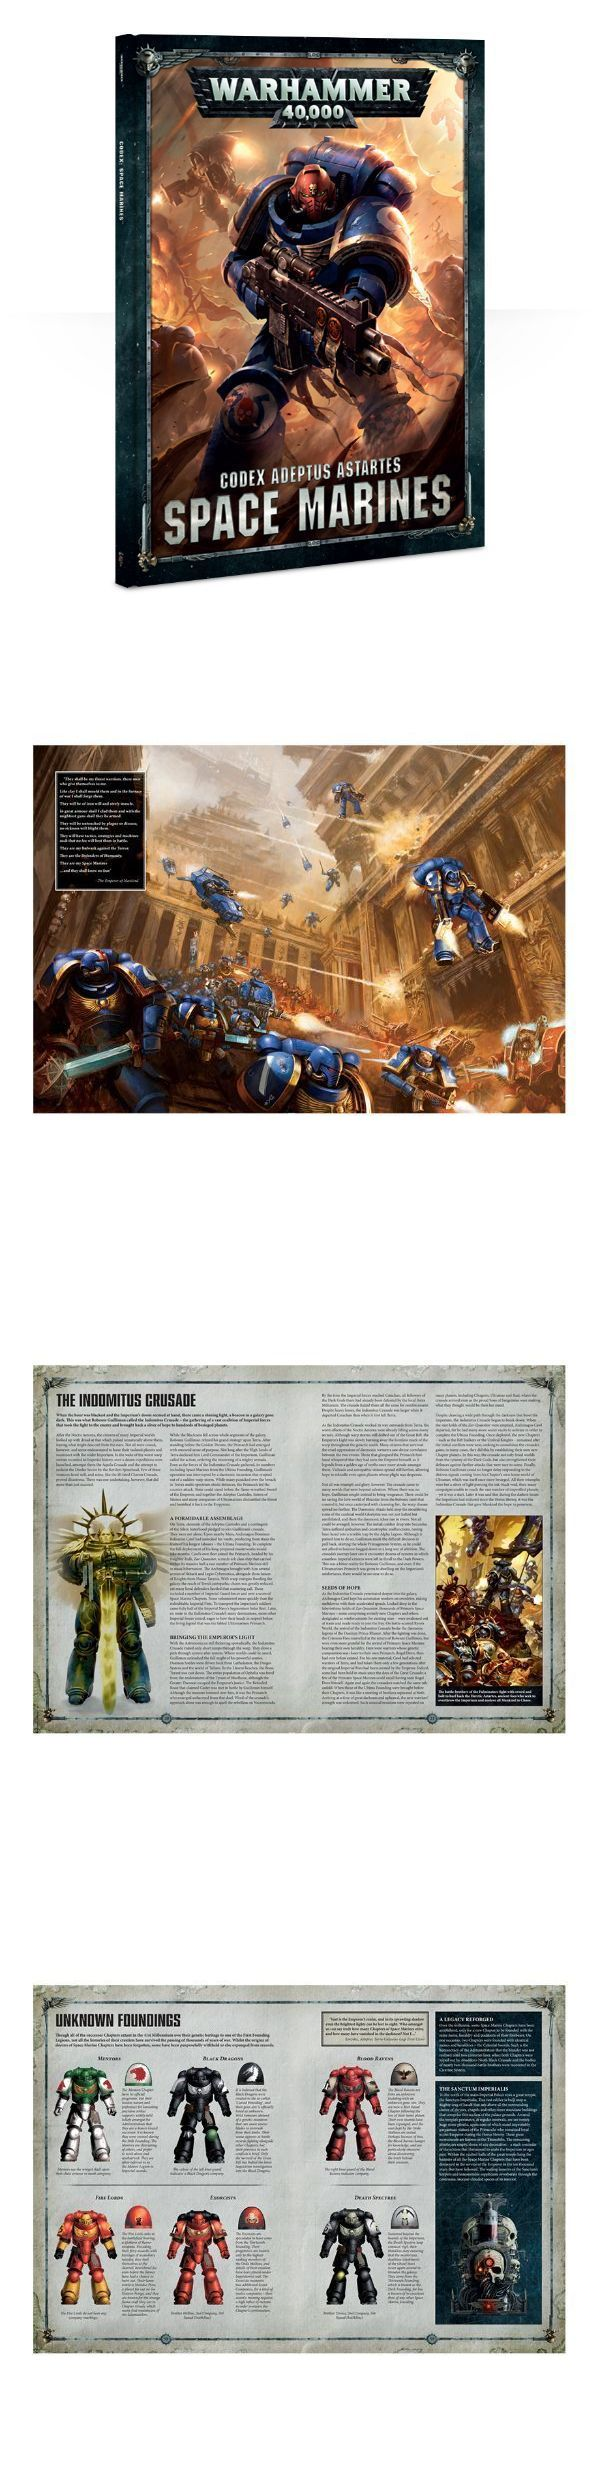 40K Rulebooks and Publications 90944: Games Workshop Warhammer 40,000 8Th Edition Codex Space Marines Free Shipping -> BUY IT NOW ONLY: $42.5 on eBay!